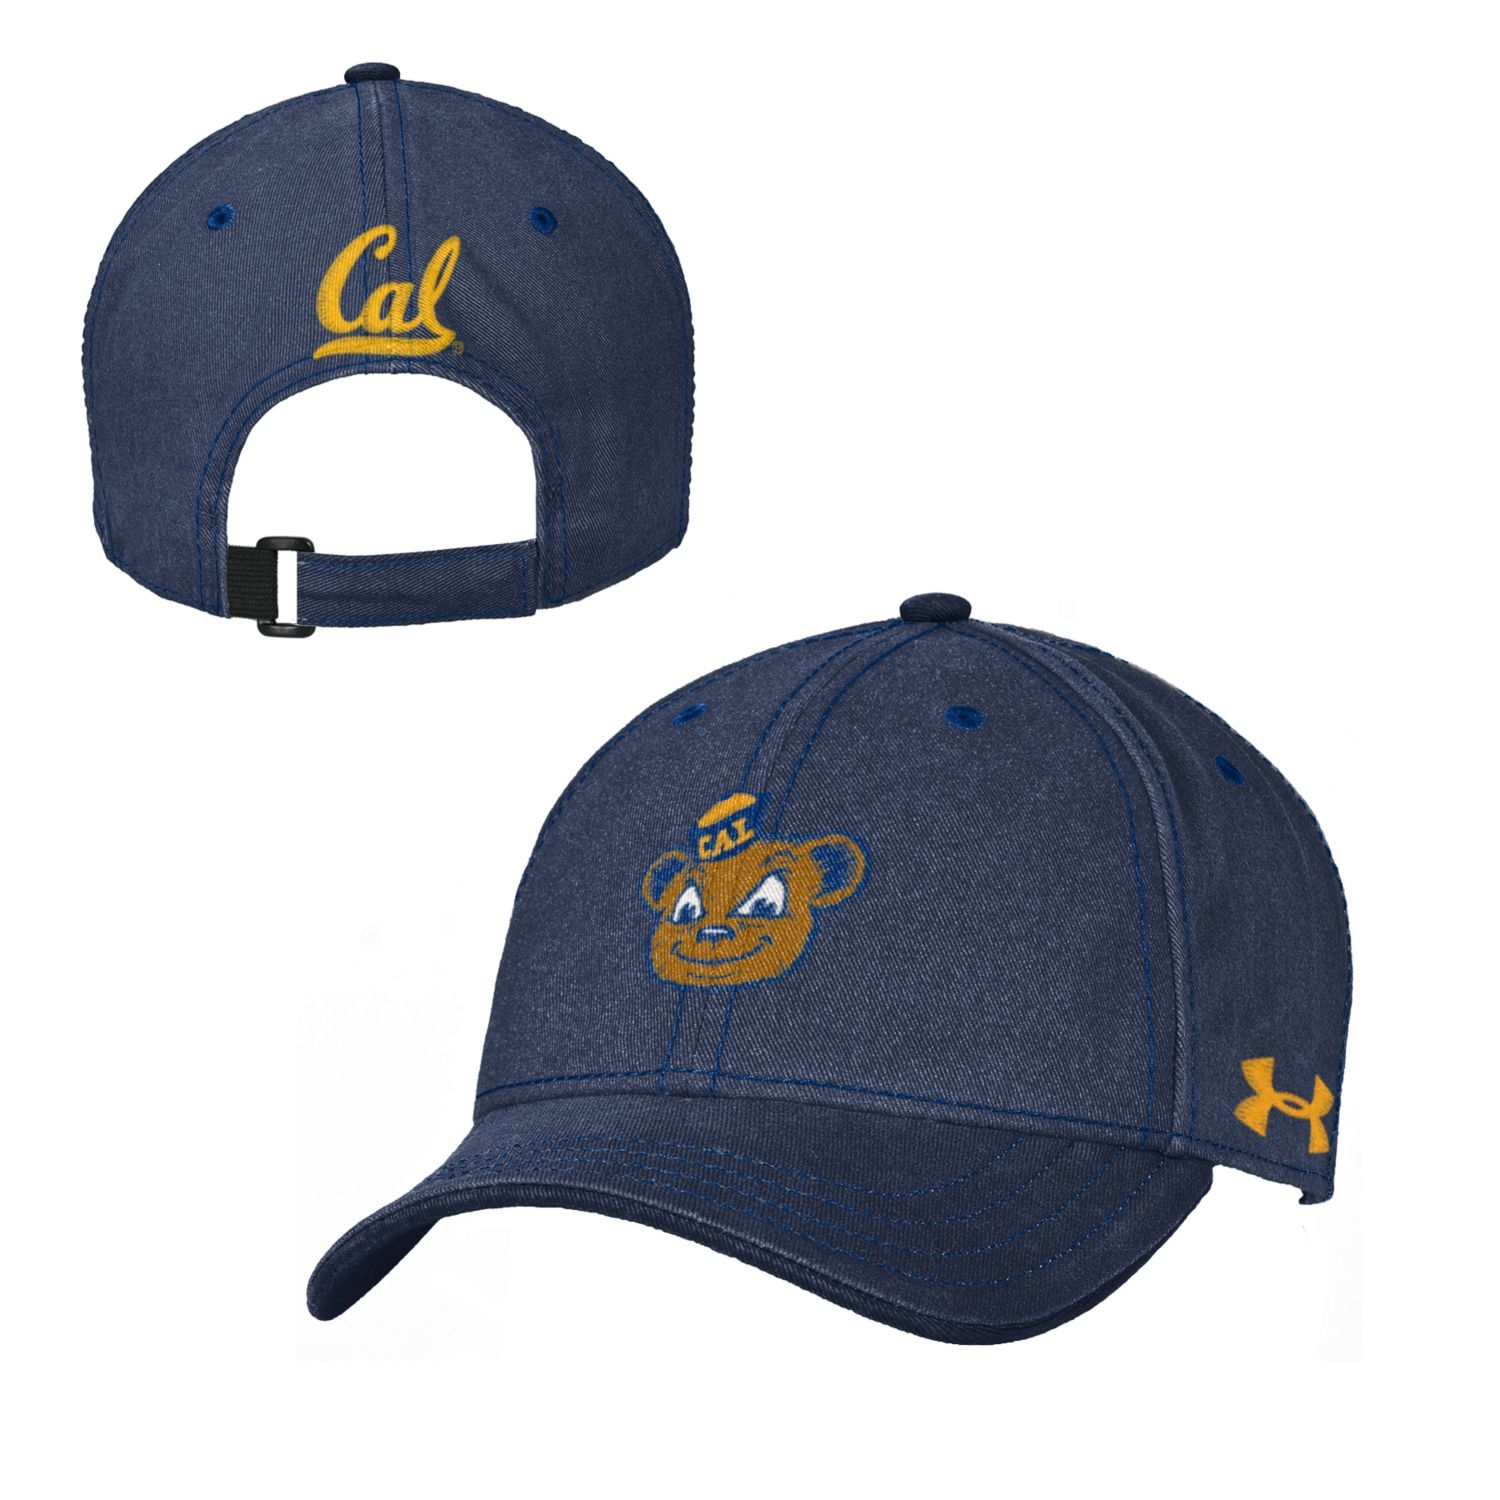 Cal Bears Under Armour Youth Garment Washed Cotton Cap